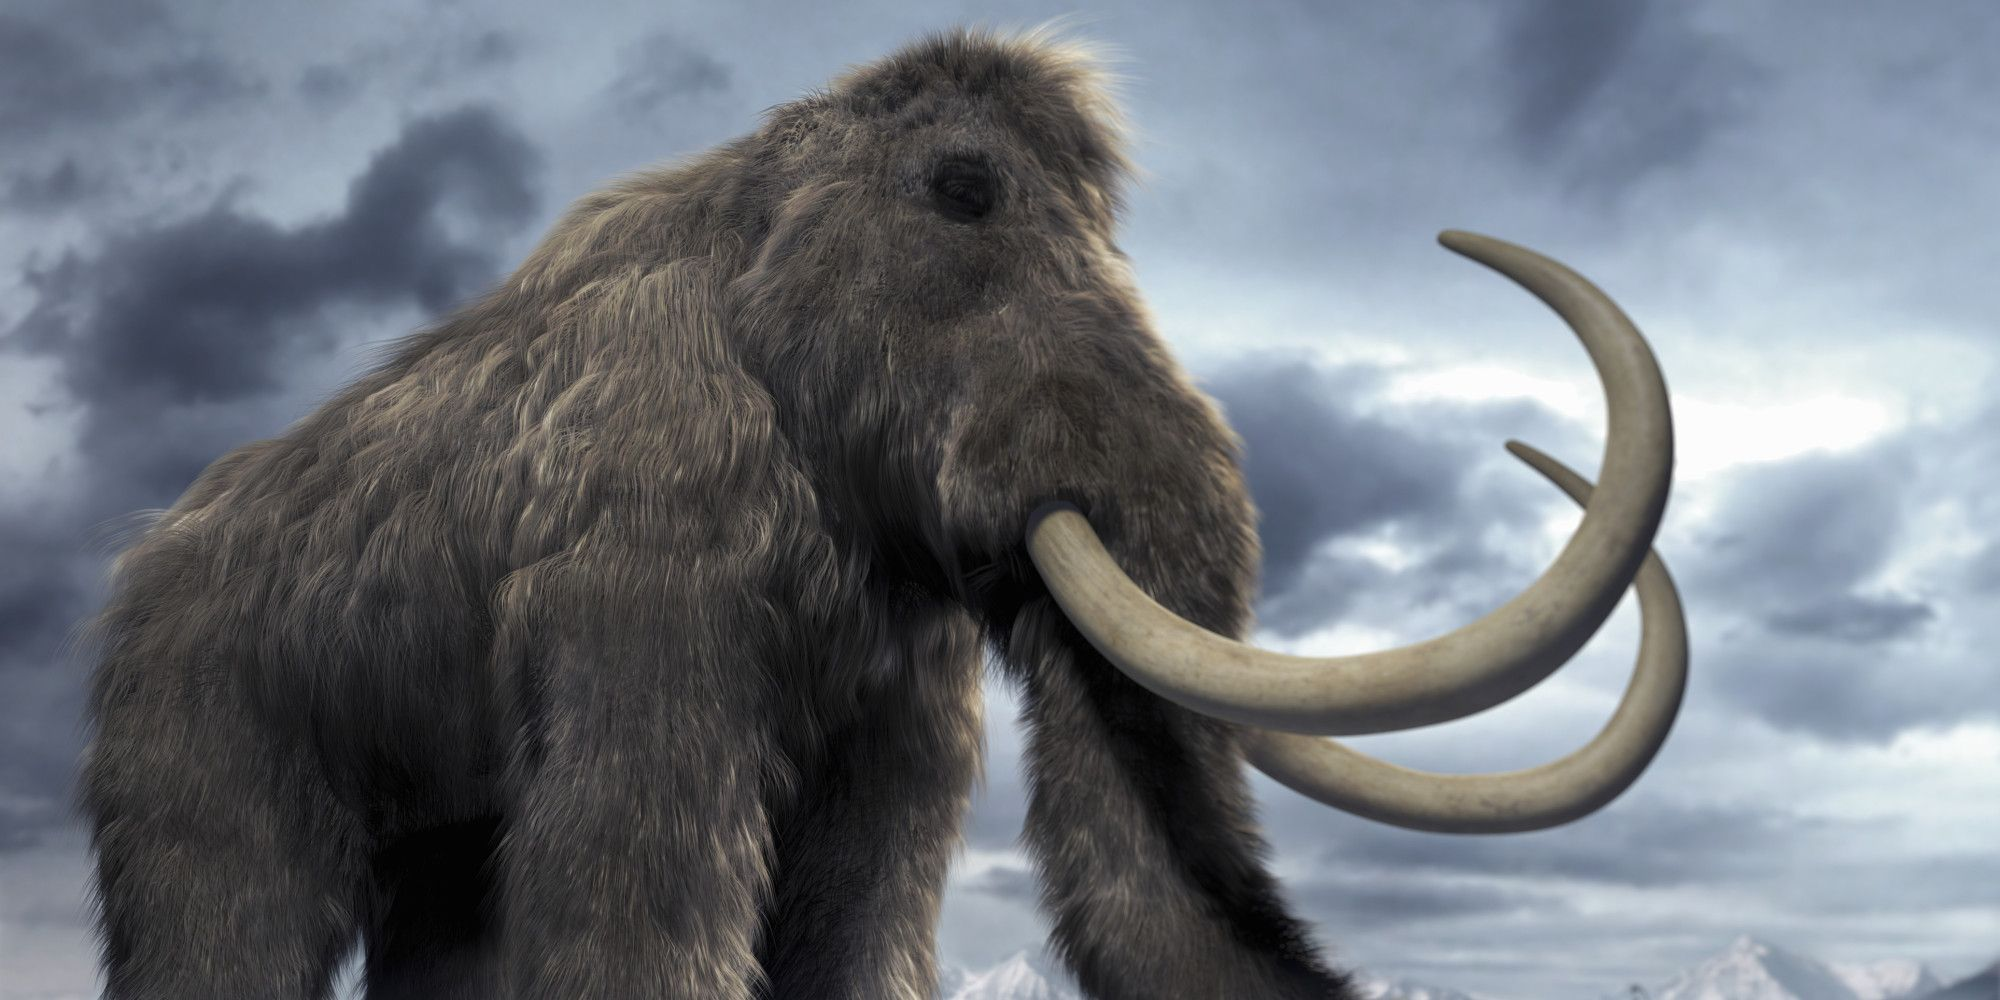 Back Woolly Mammoth? Wooly mammoth, Mammoth